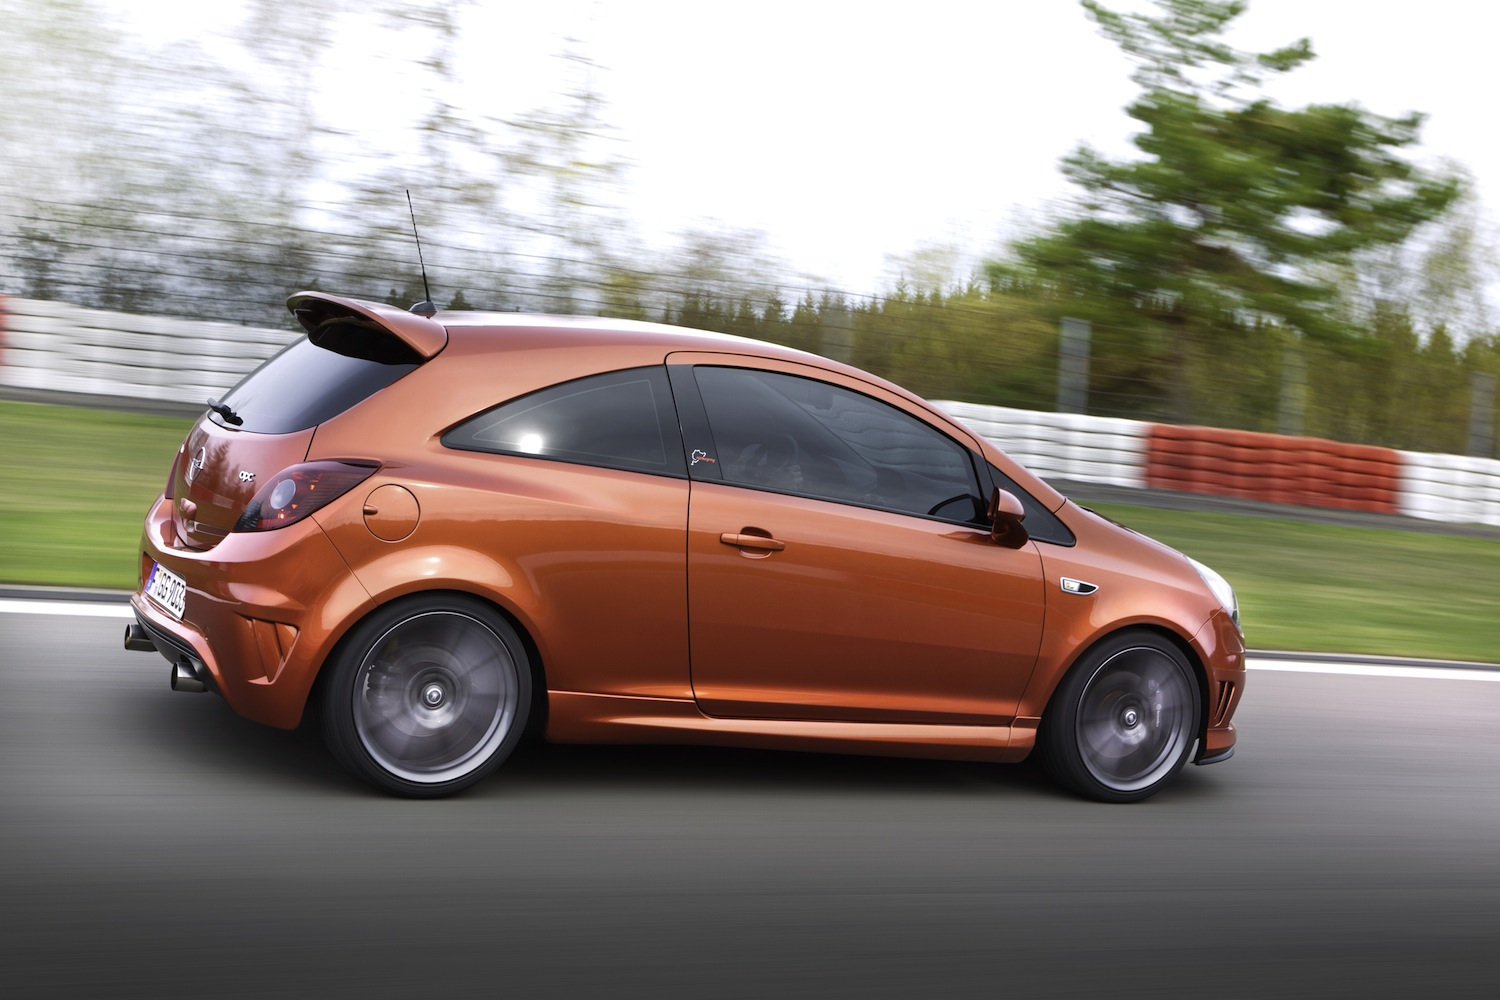 Opel Corsa Opc N 252 Rburgring Edition